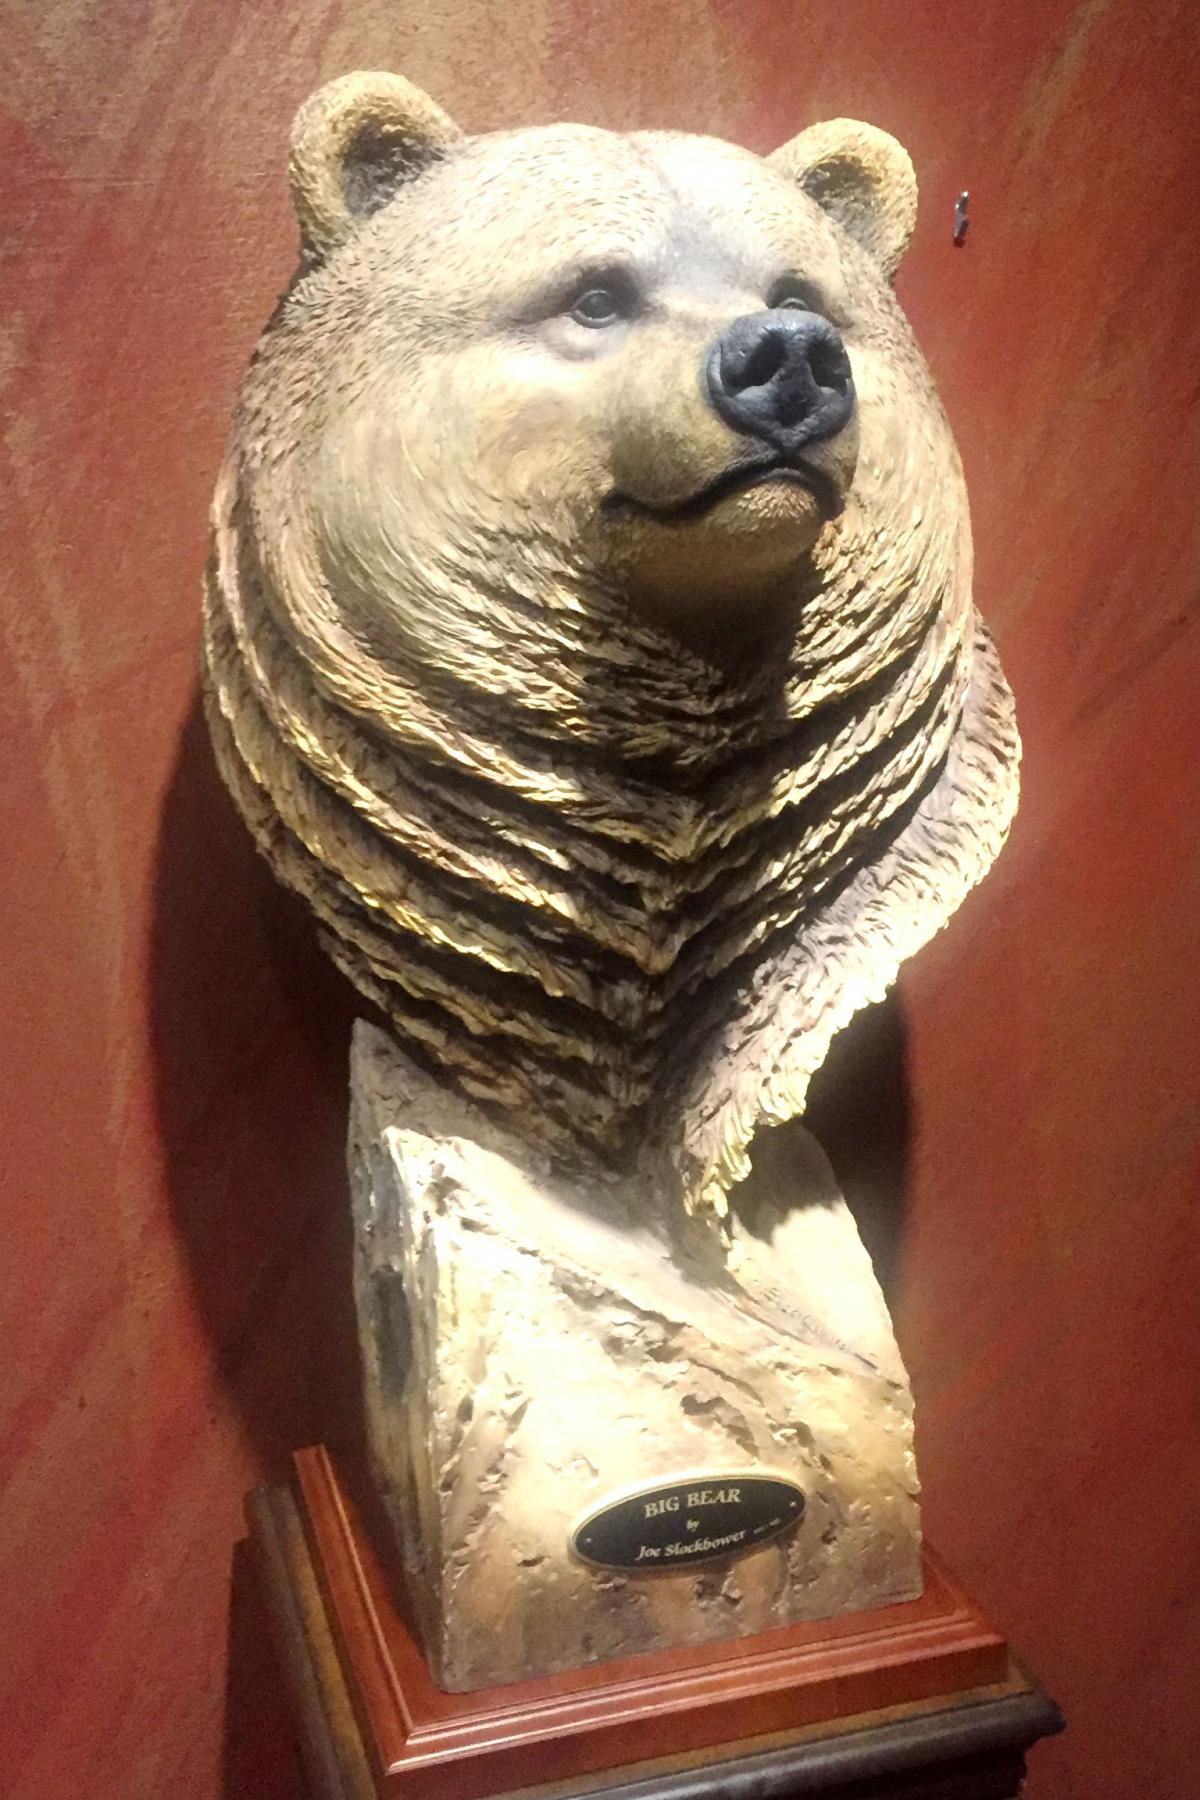 sculpture of a grizzly bear by renowned naturalist sculptor John Slockbower